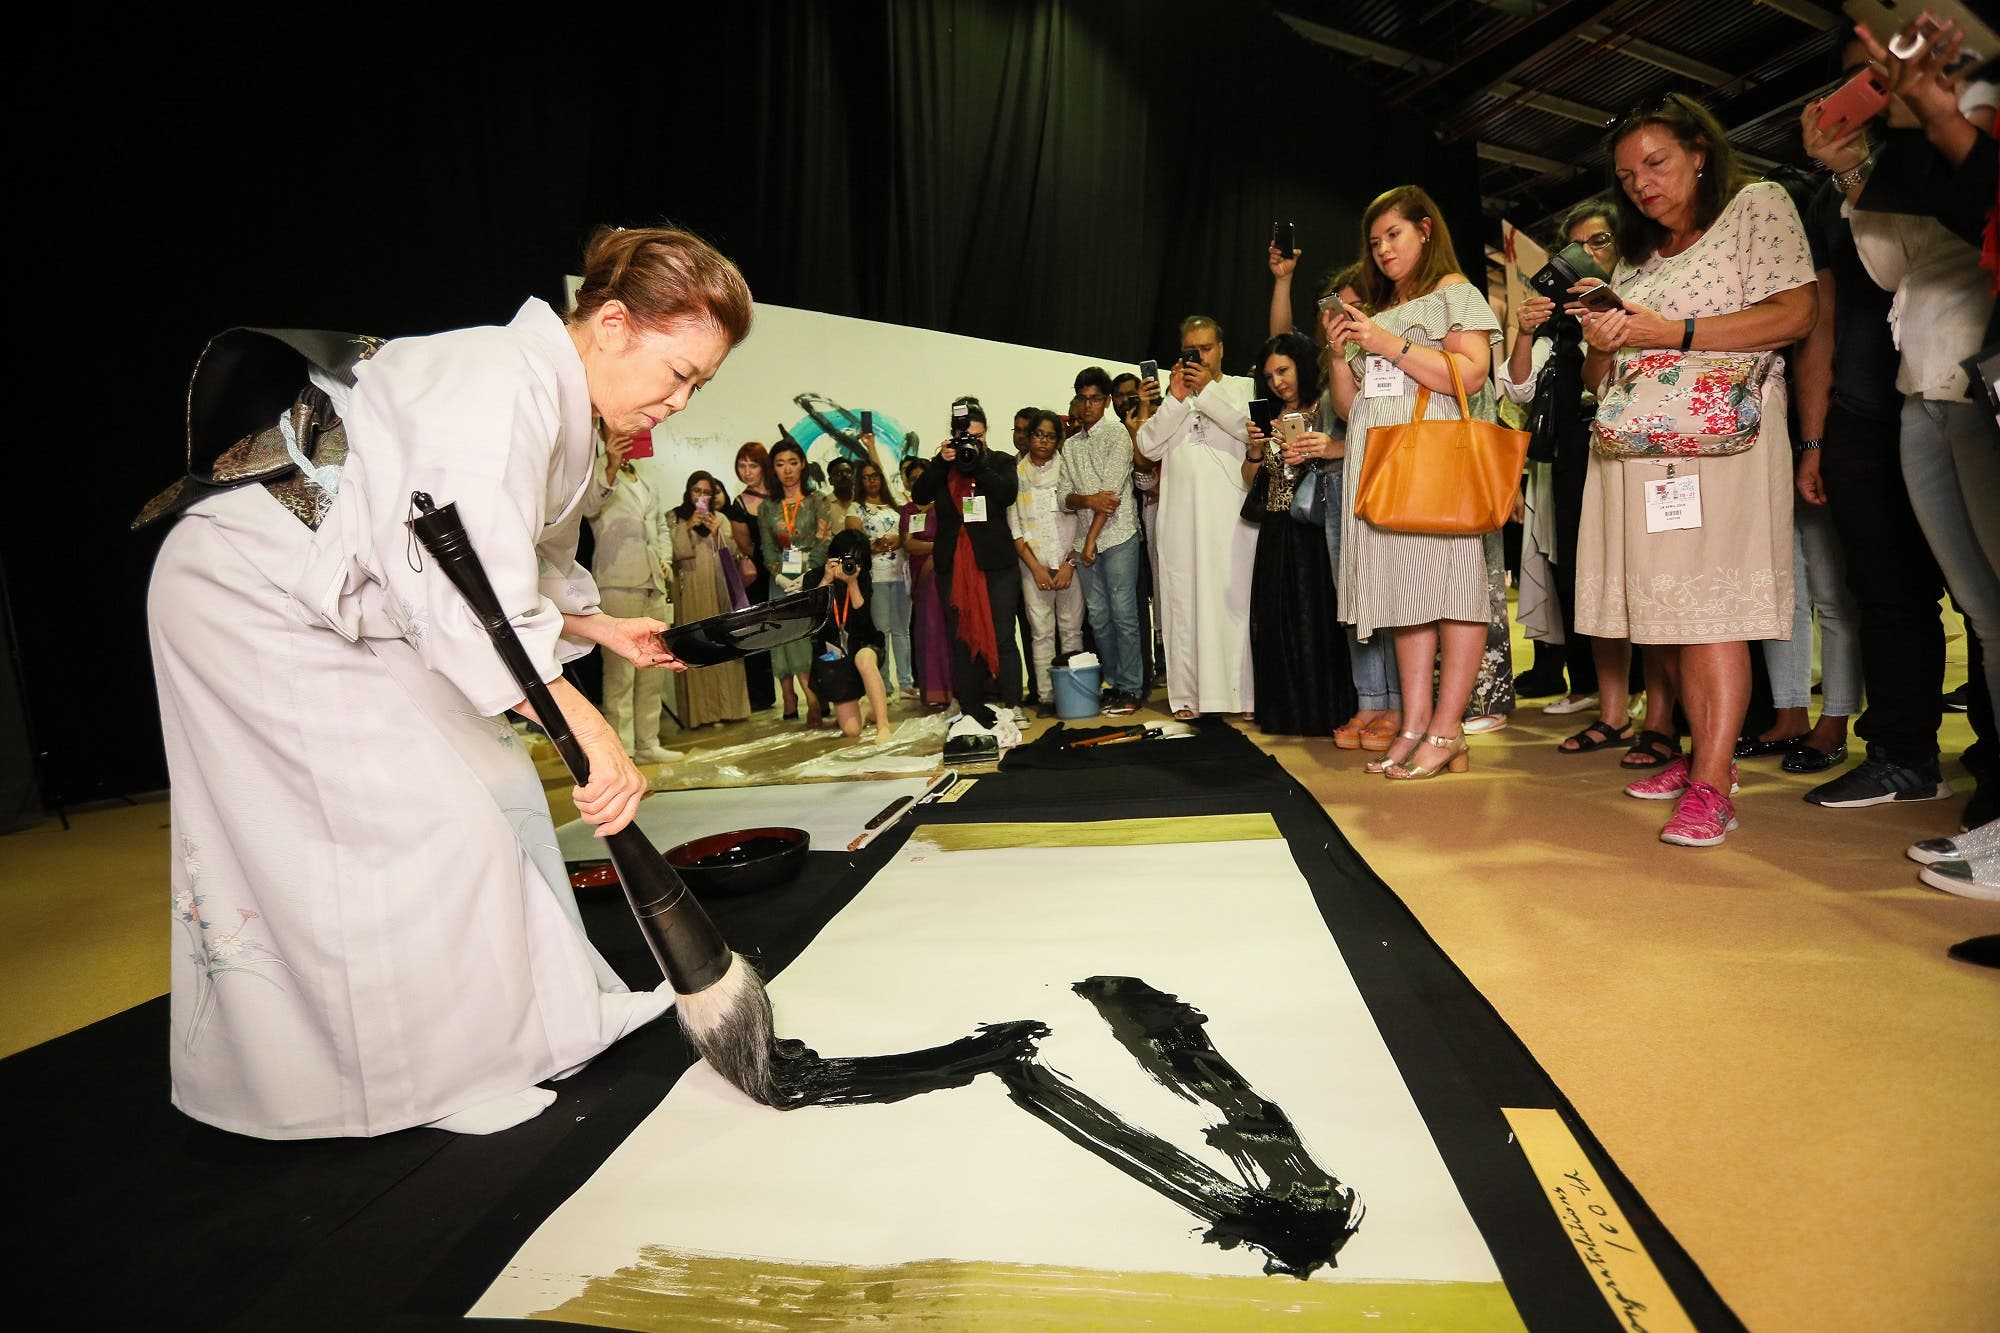 One of the most prevalent countries at World Art Dubai is Japan, with a pavilion of Far East galleries and artists displaying traditional calligraphy and ink painting. (Supplied)